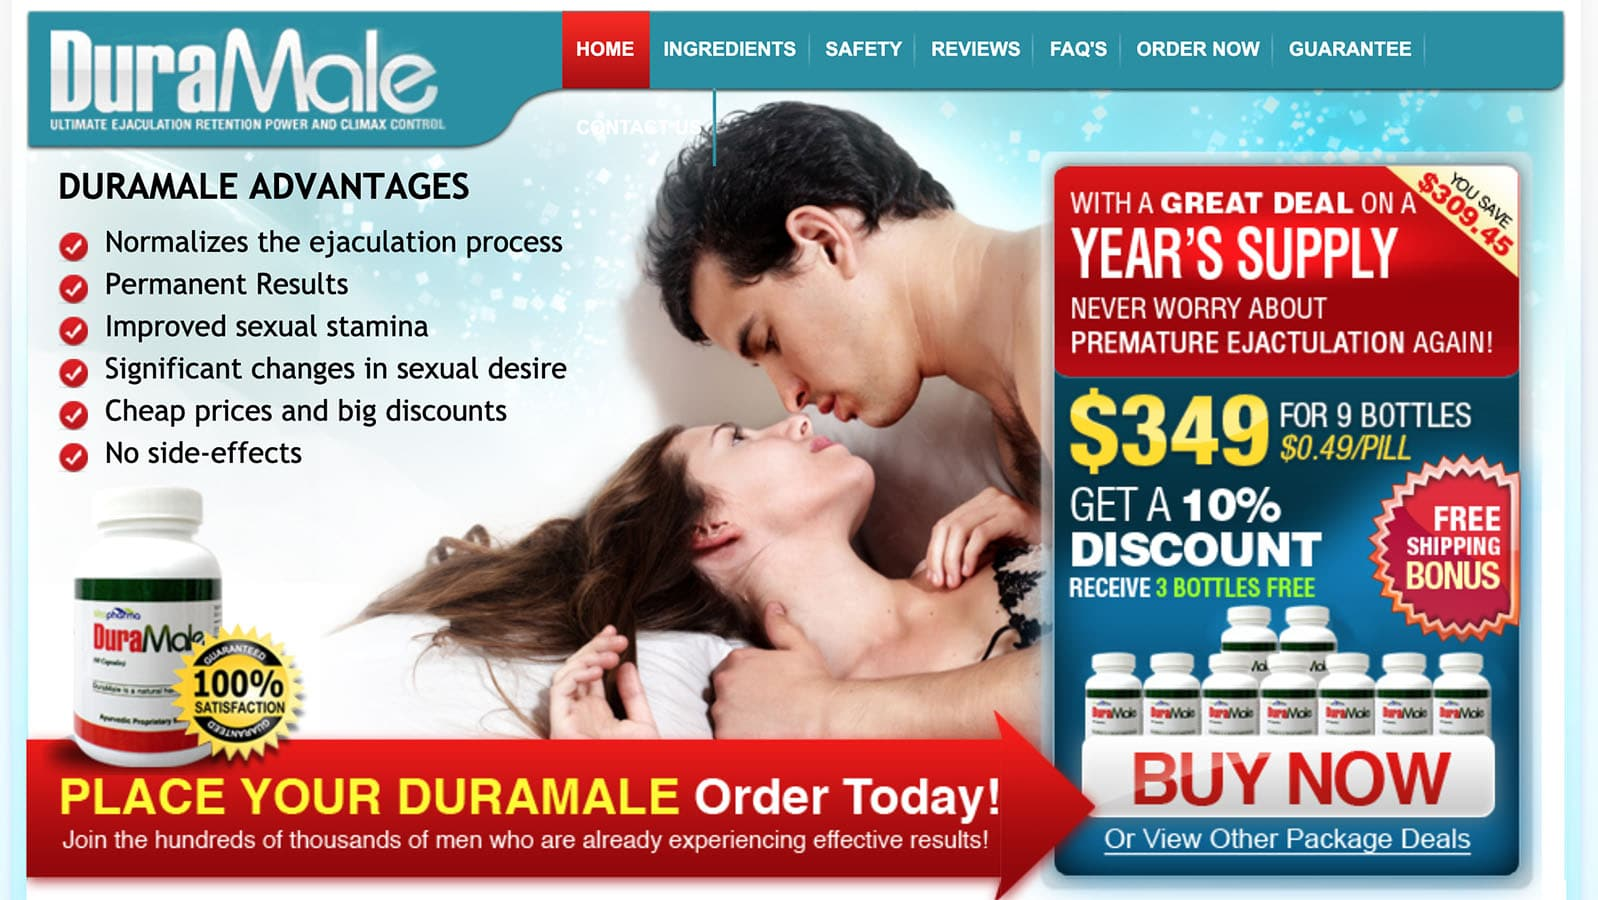 duramale uk website